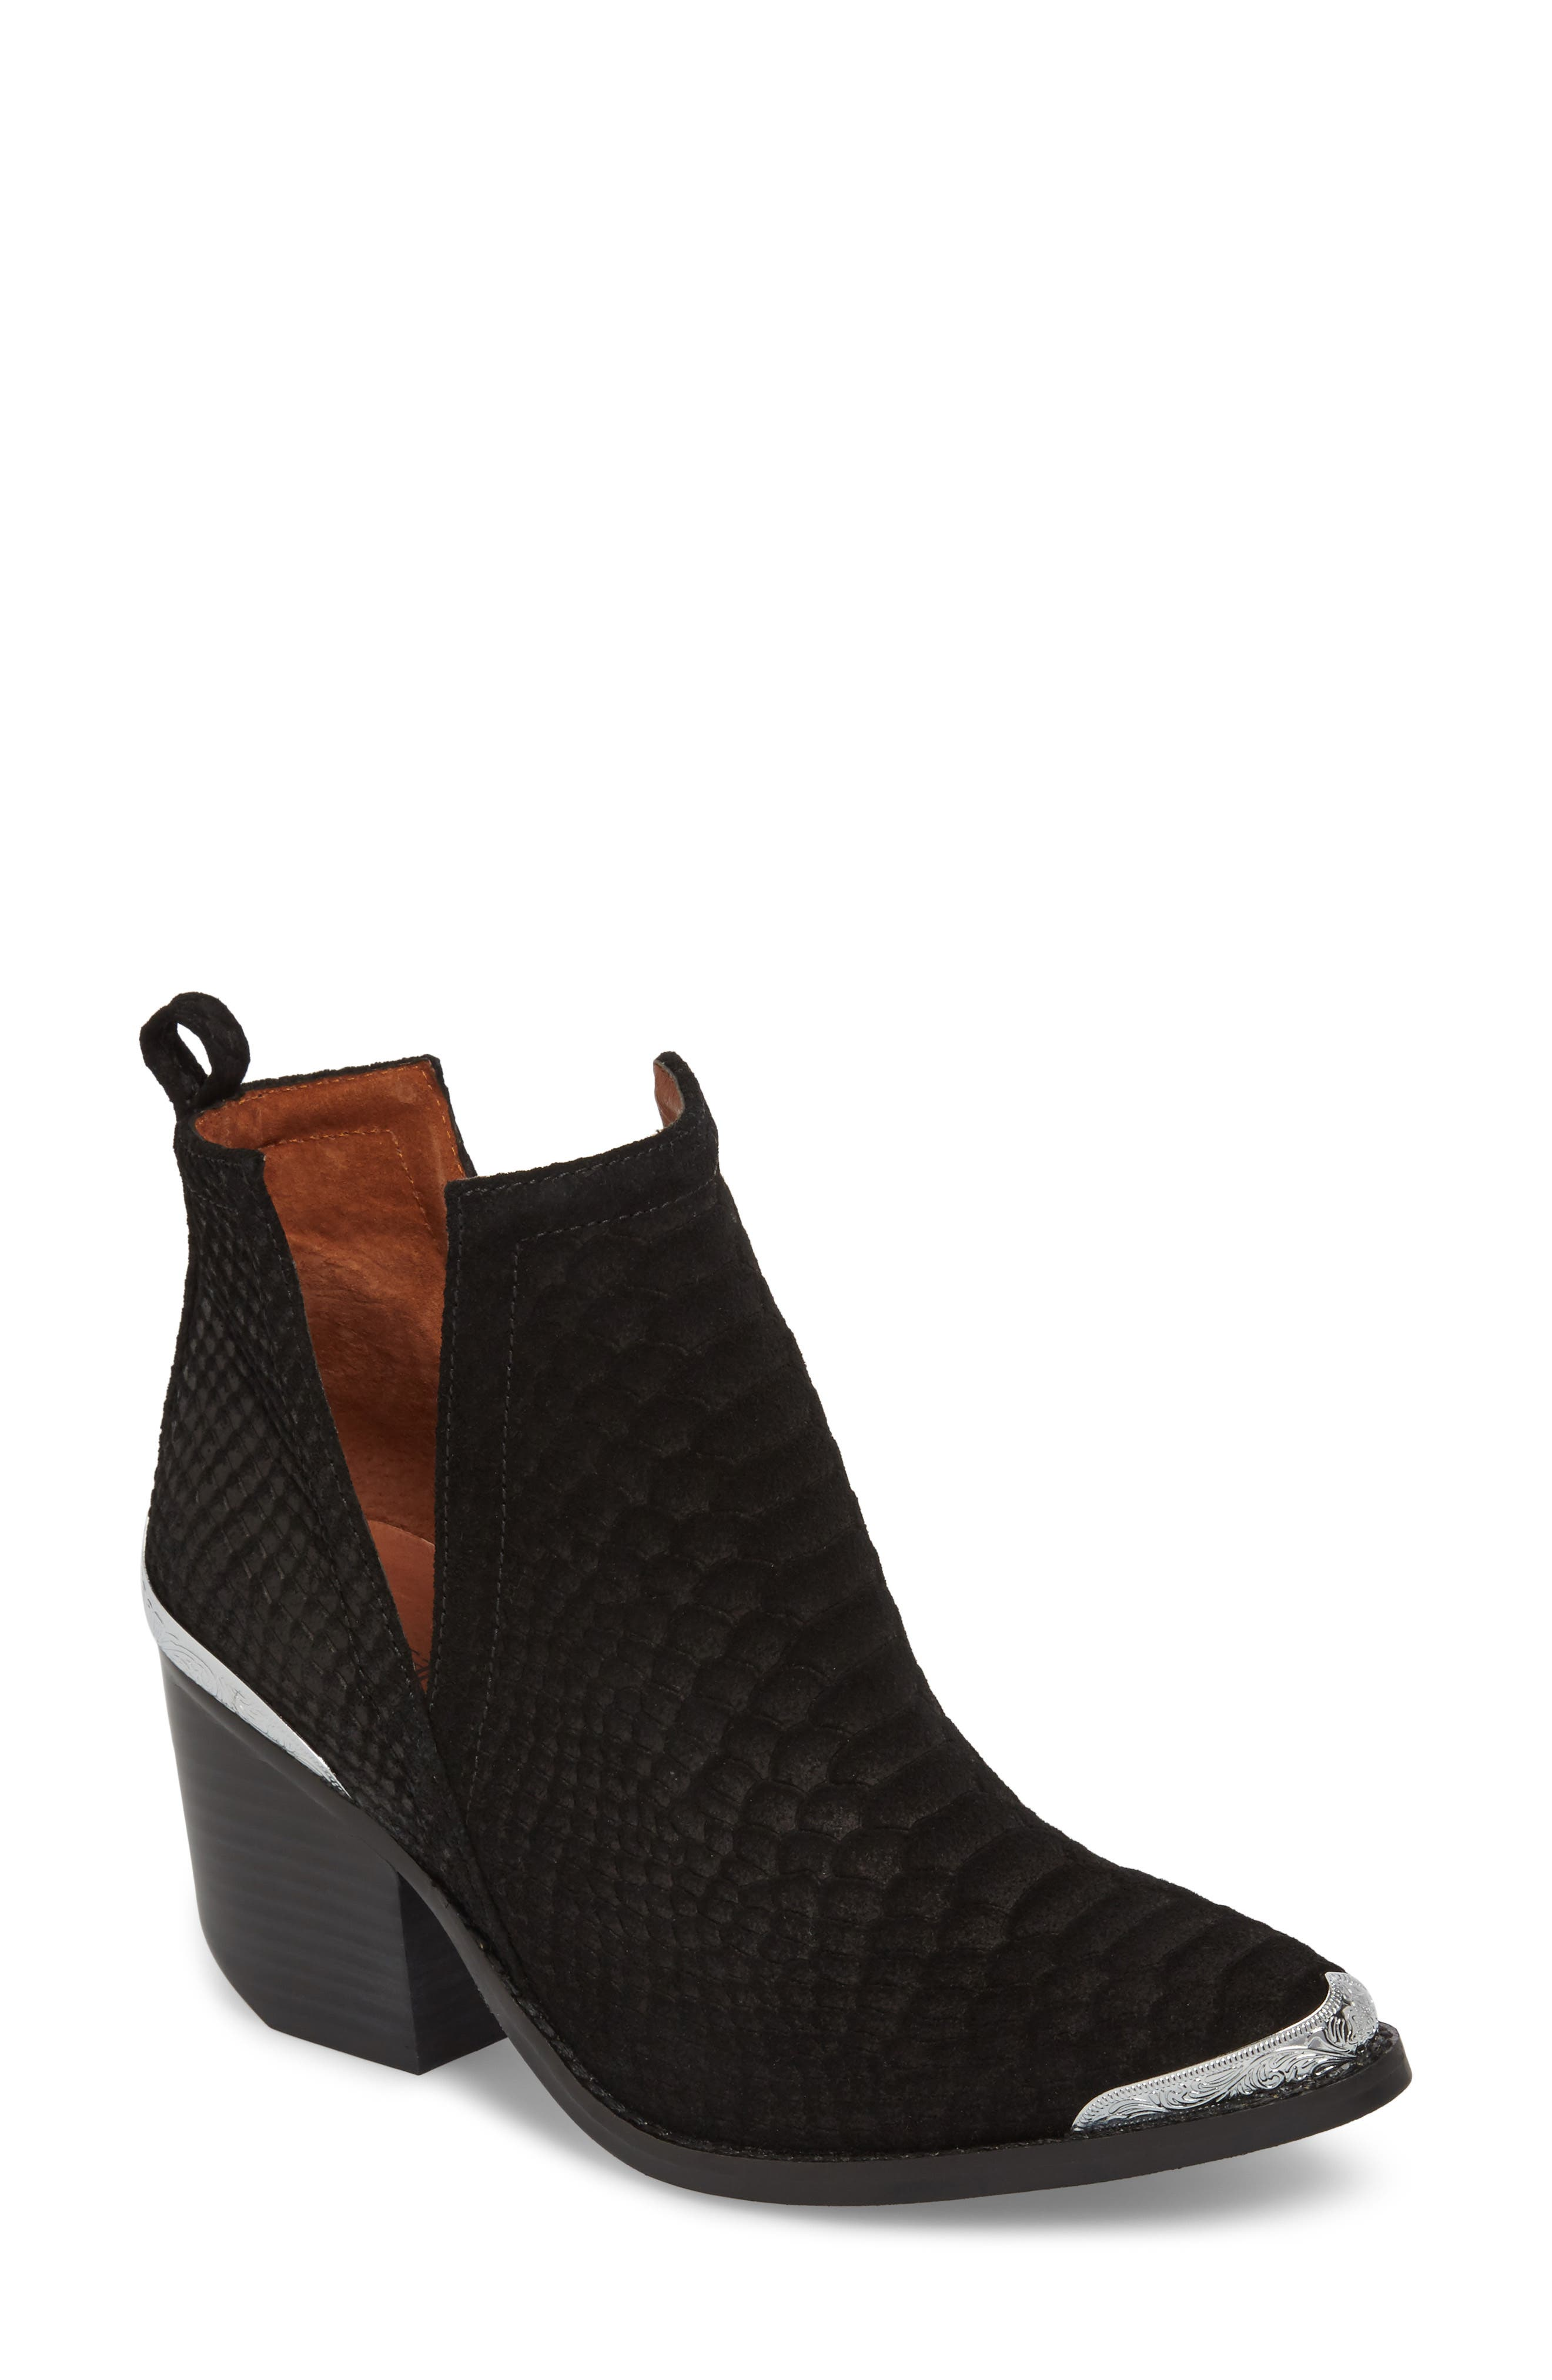 Cromwell Cutout Western Boot,                         Main,                         color, Black Suede/ Snake